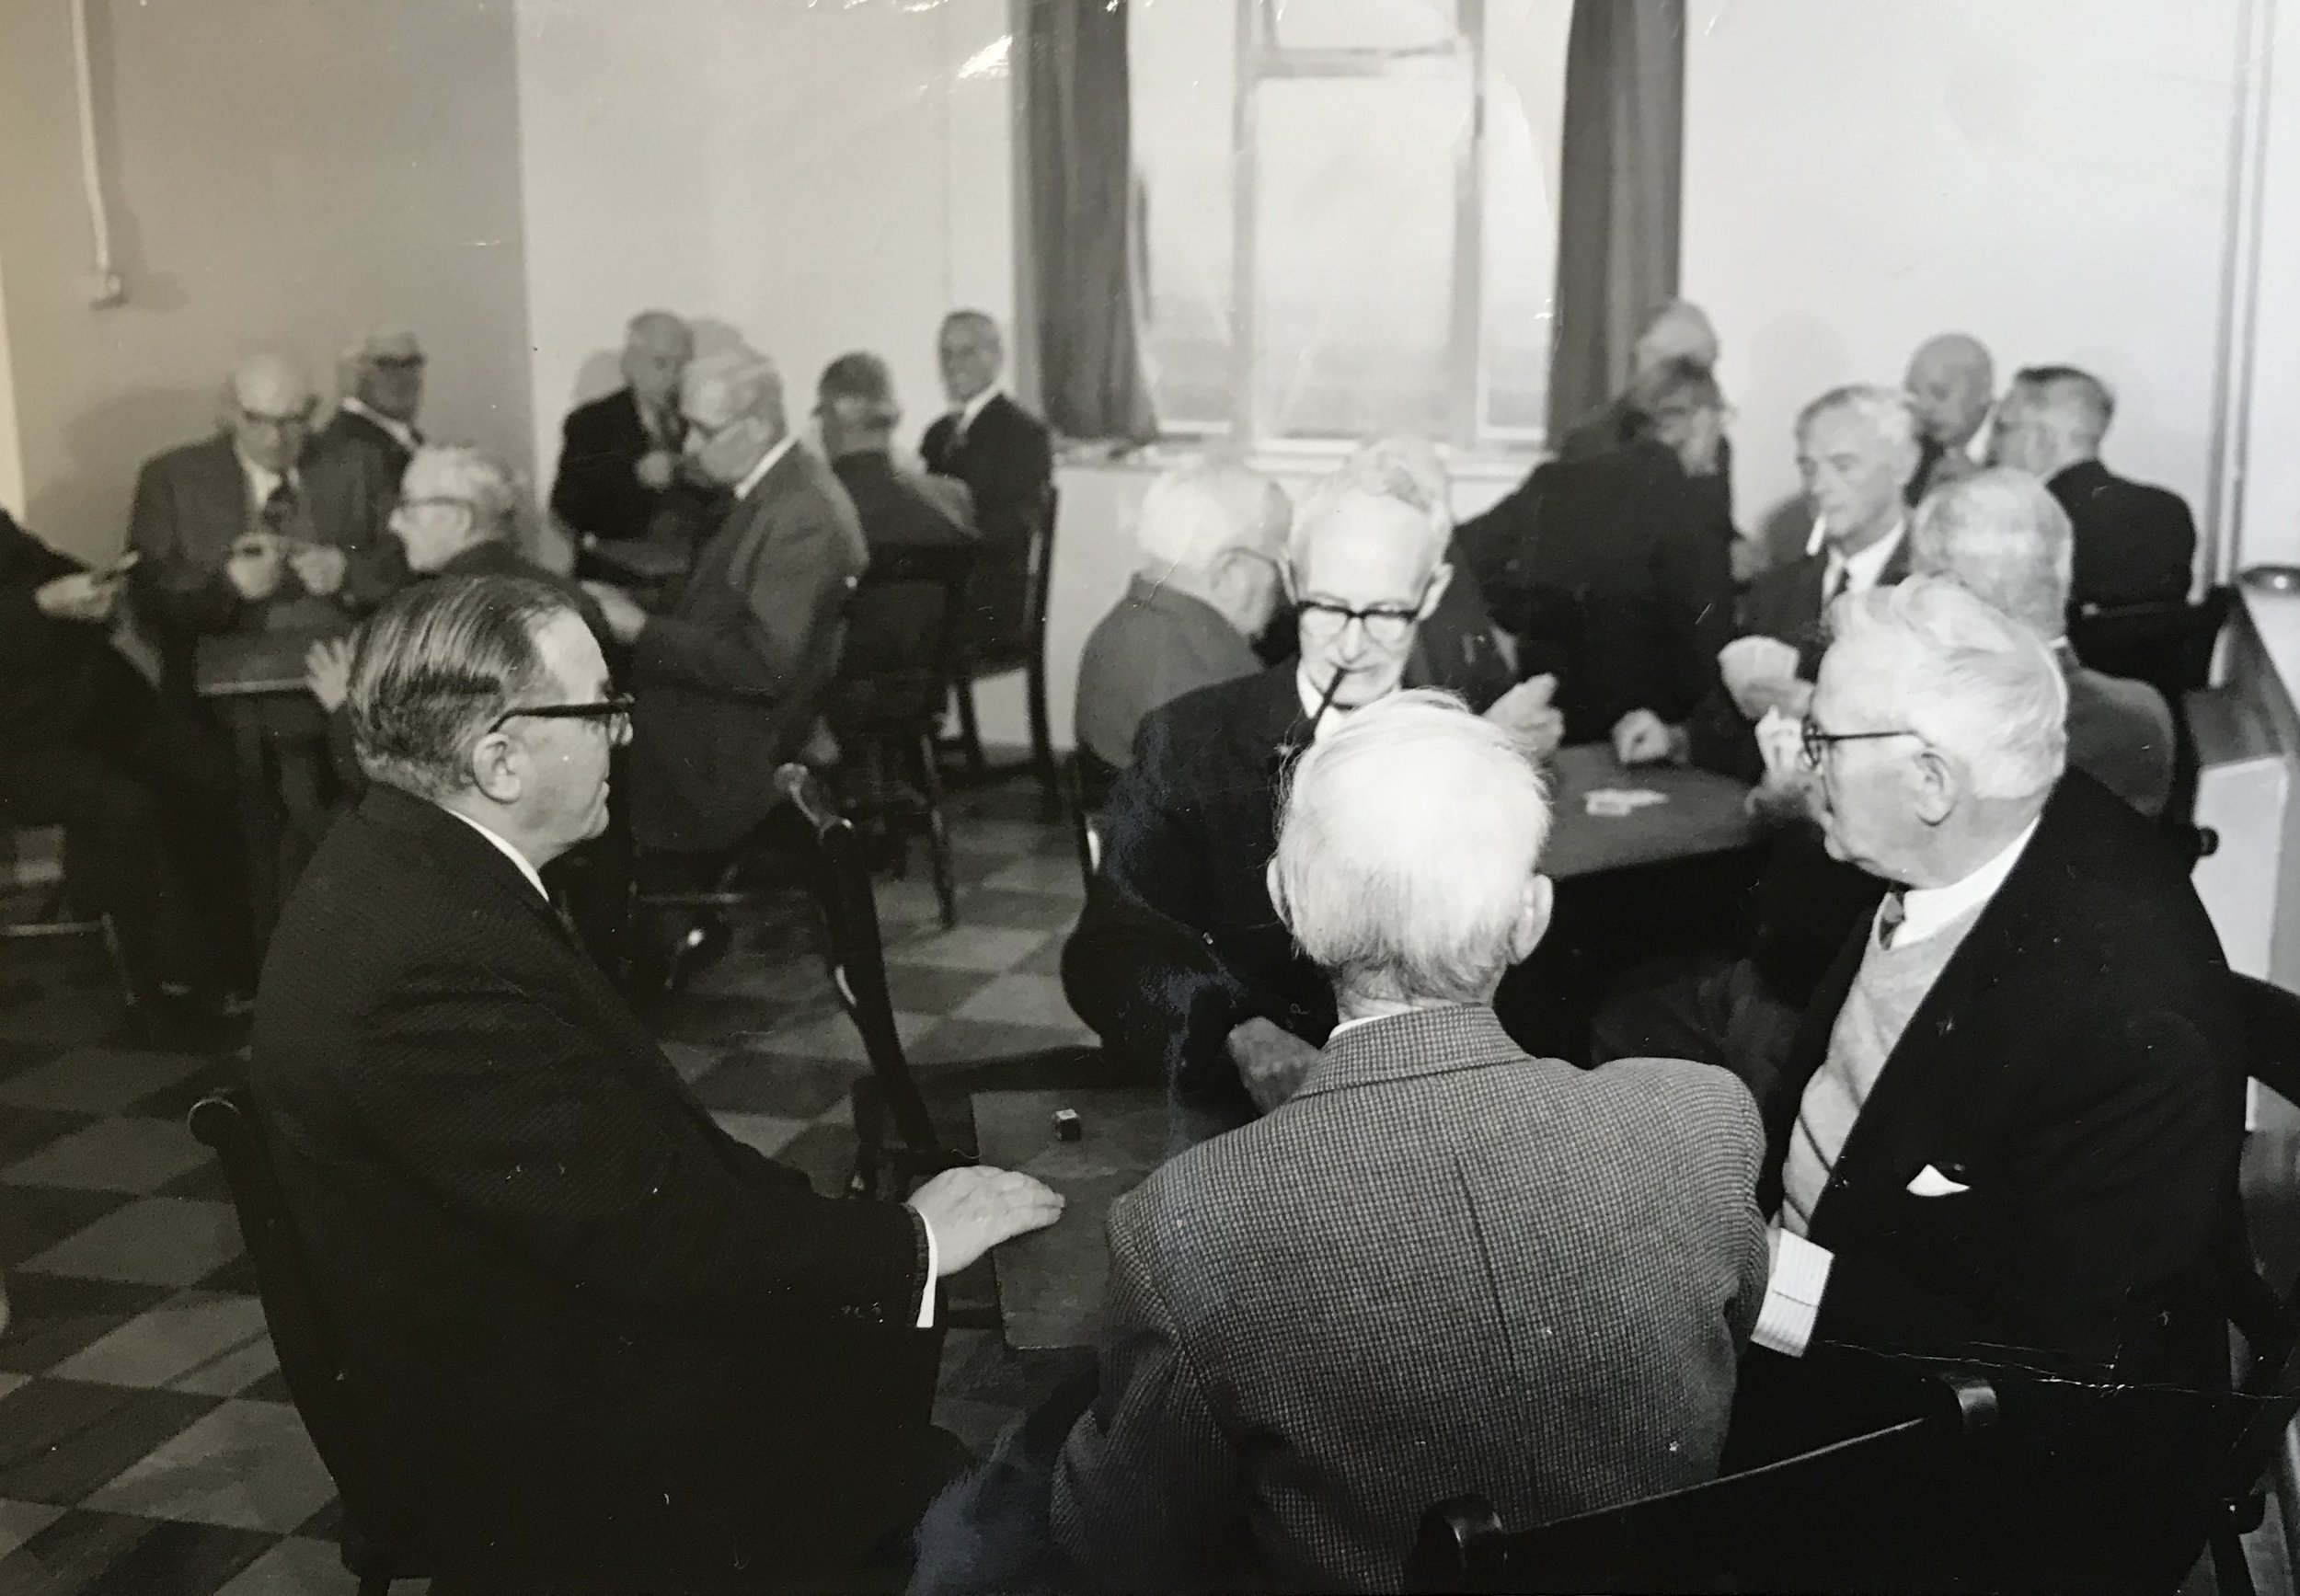 PLAYING CARDS IN THE SONS OF REST BUILDING